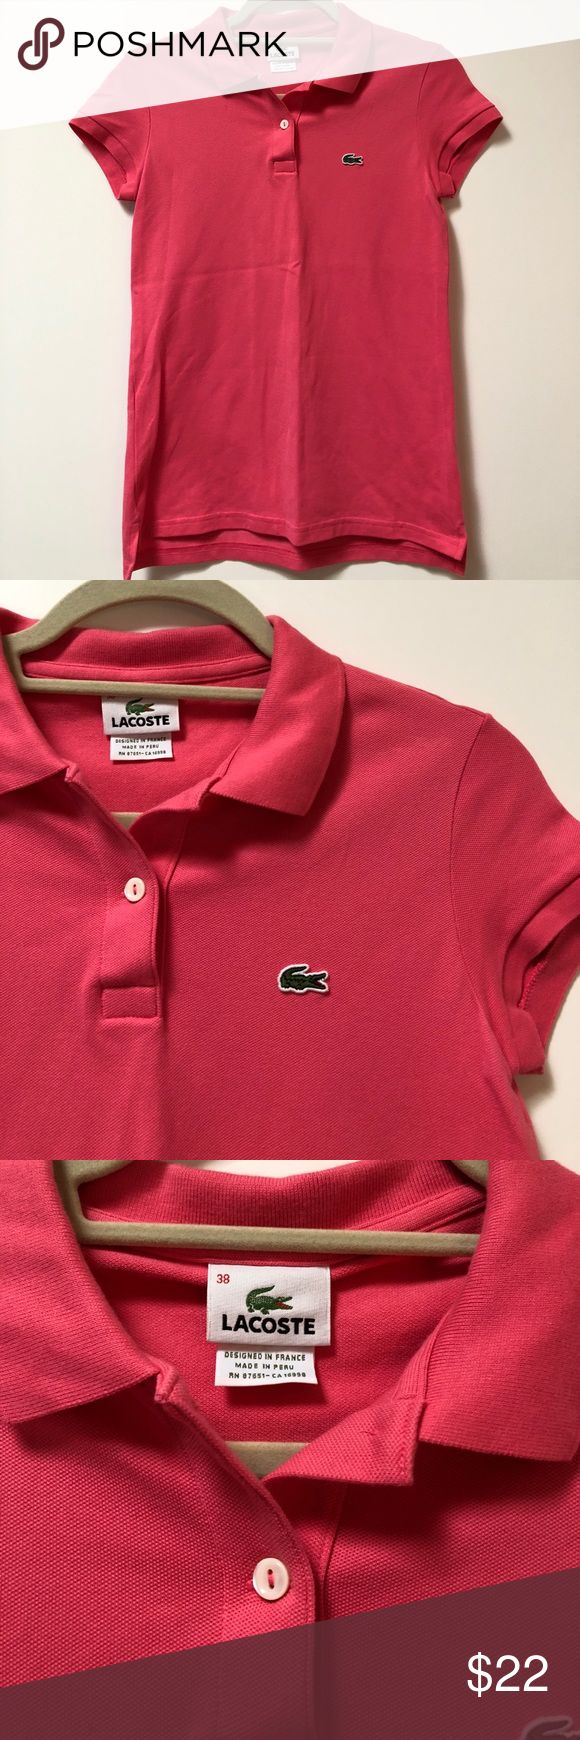 Lacoste Pink Polo size 38 (S) Lacoste Pink Polo, size 38. In excellent-like new condition !! Lacoste Tops